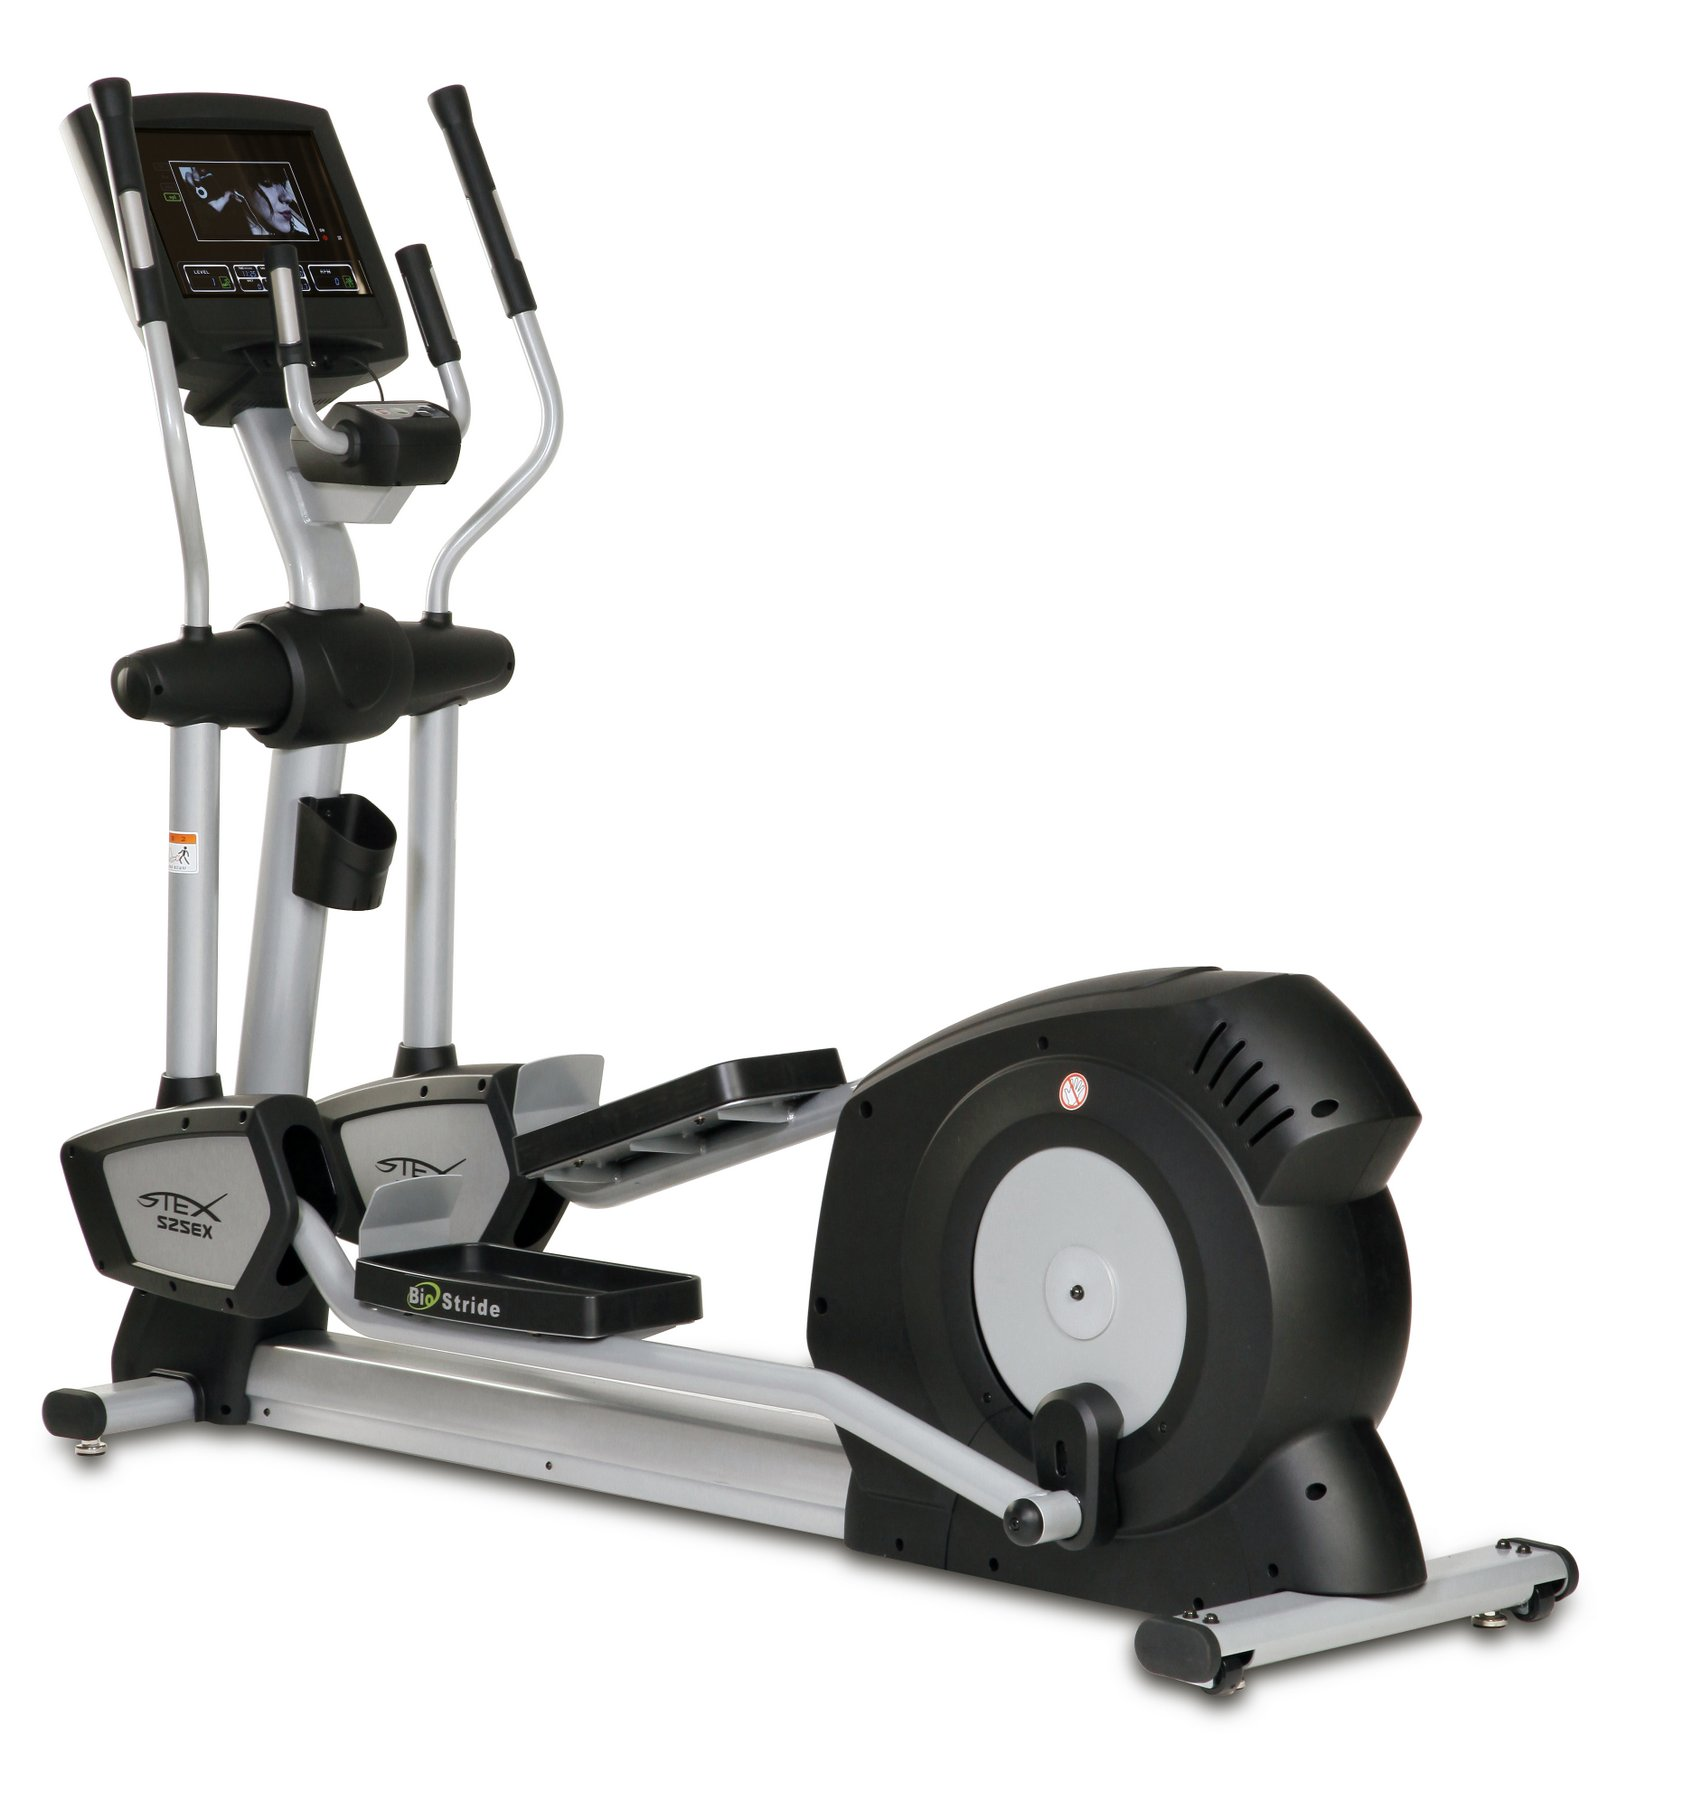 STEX S25EX CROSS TRAINER (DIGITAL TUNER)